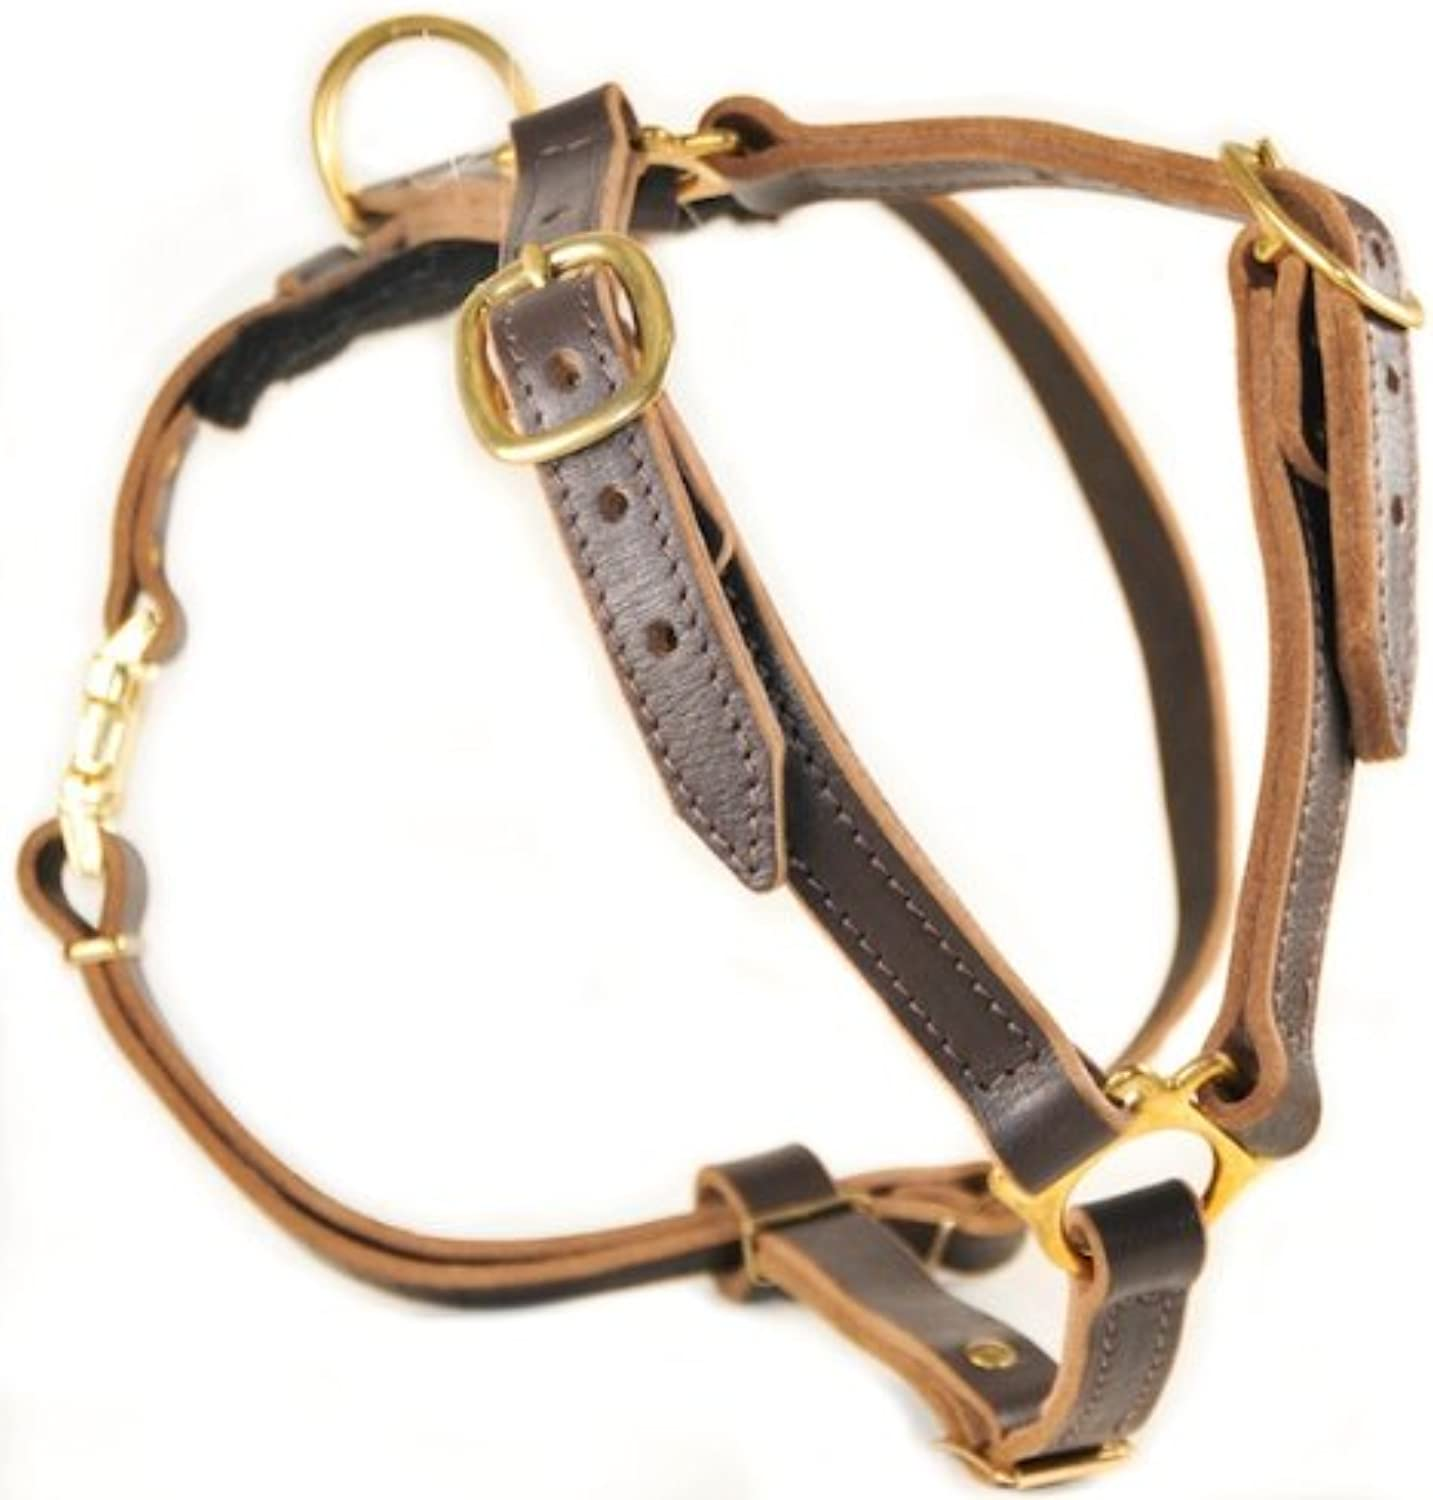 Dean and Tyler Tyler's Choice Solid Brass Hardware Leather Dog Harness, Brown, Large  Fits Girth Size  32Inch to 39Inch